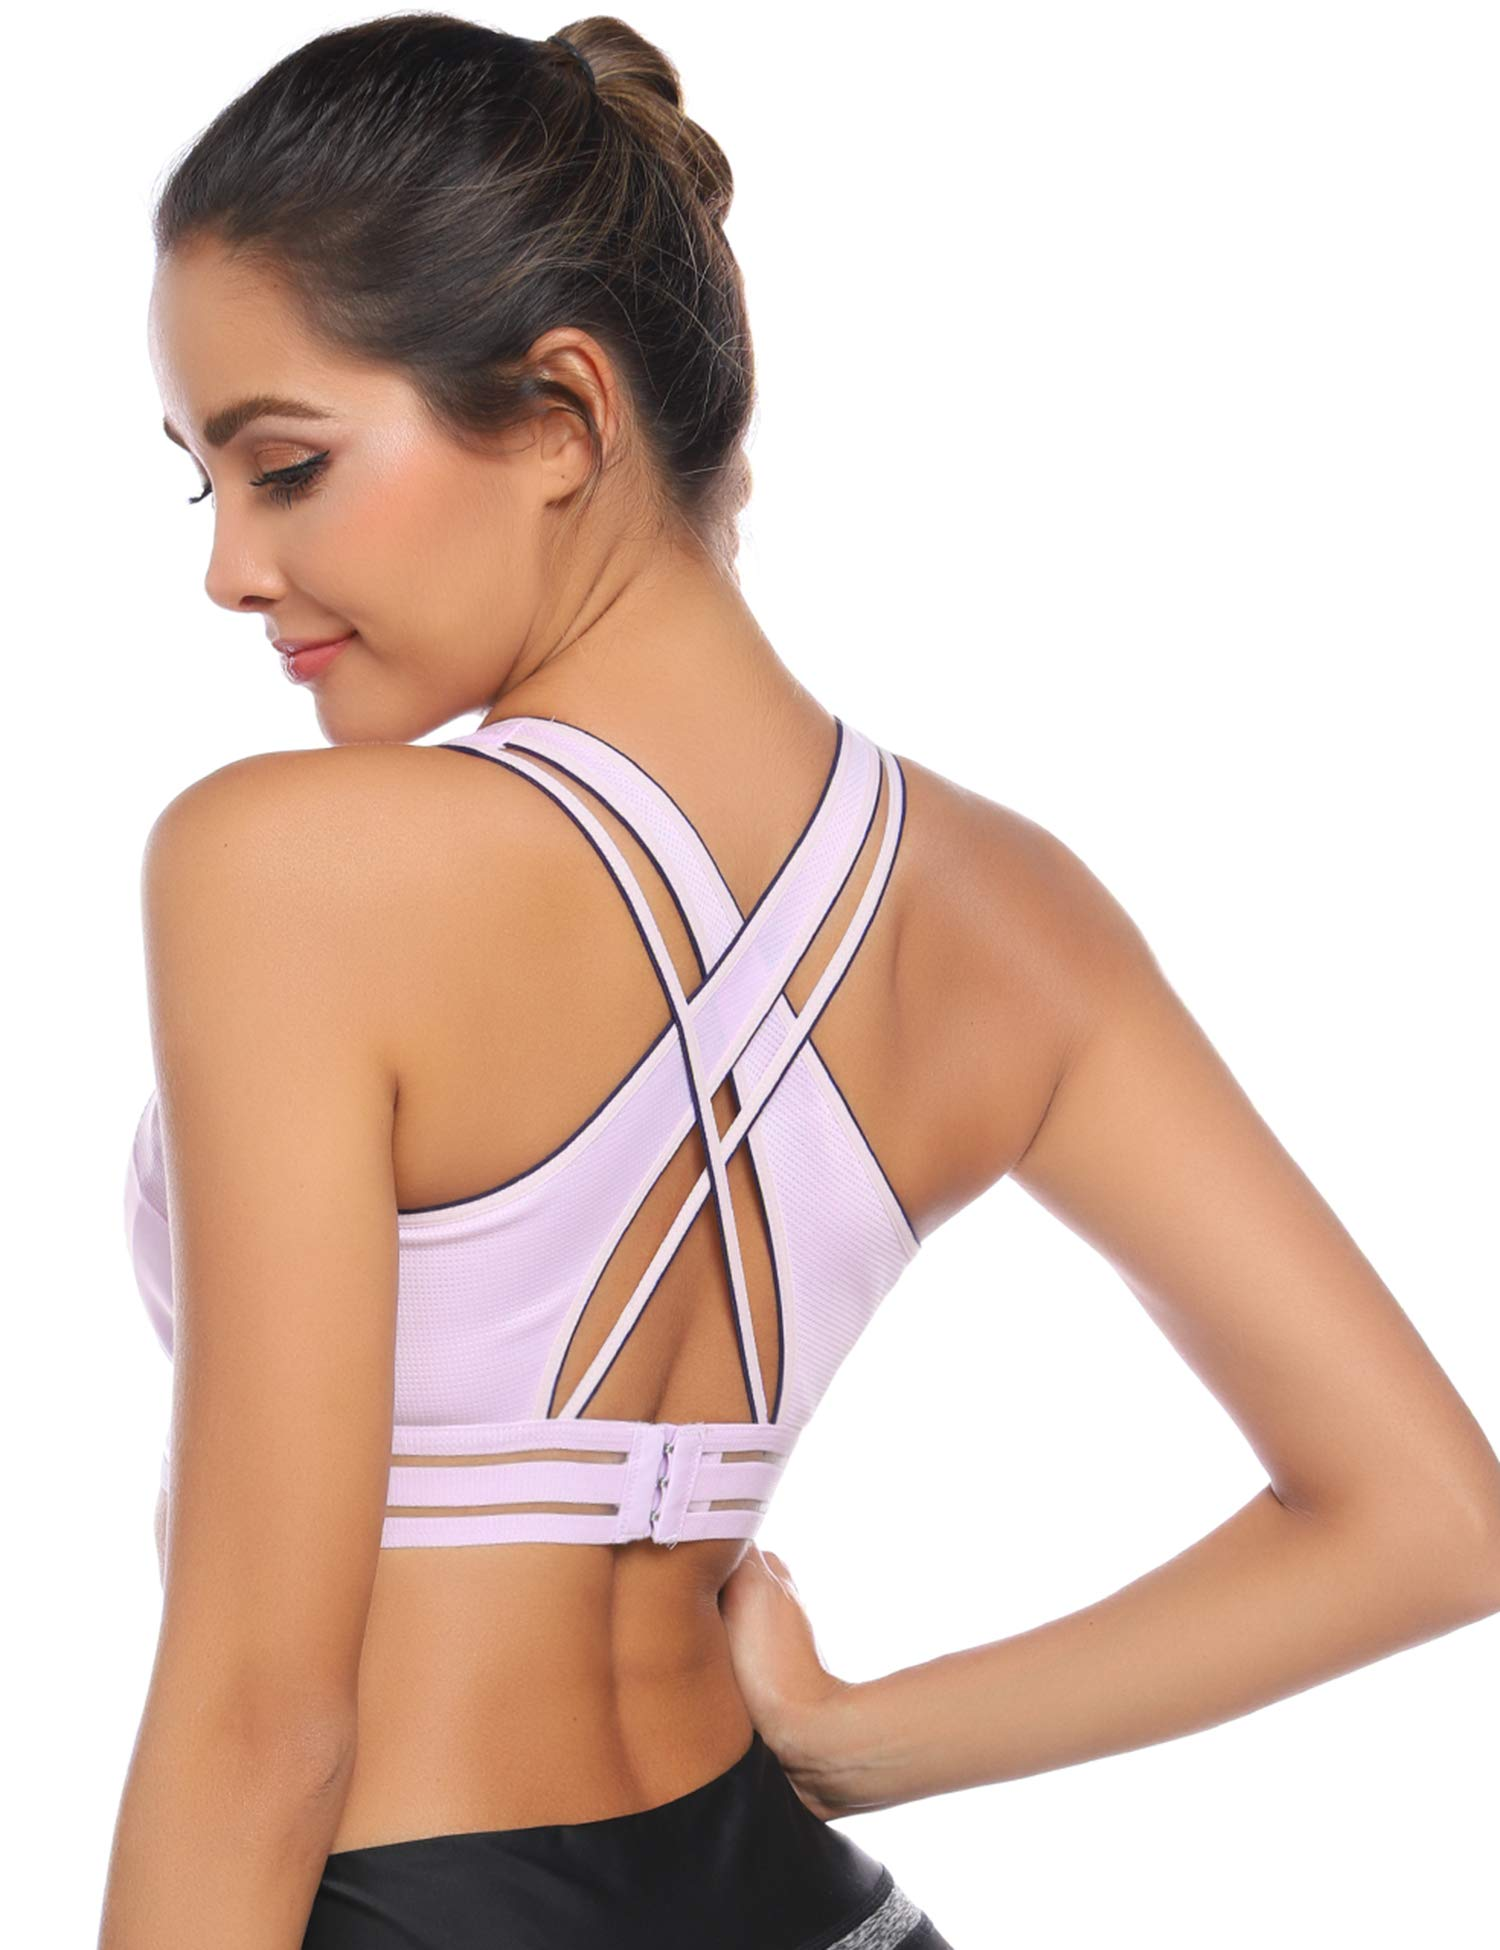 Back Cross Strappy Sports Bra Women Hollow Out Seamless Nylon Gym Removable Pads